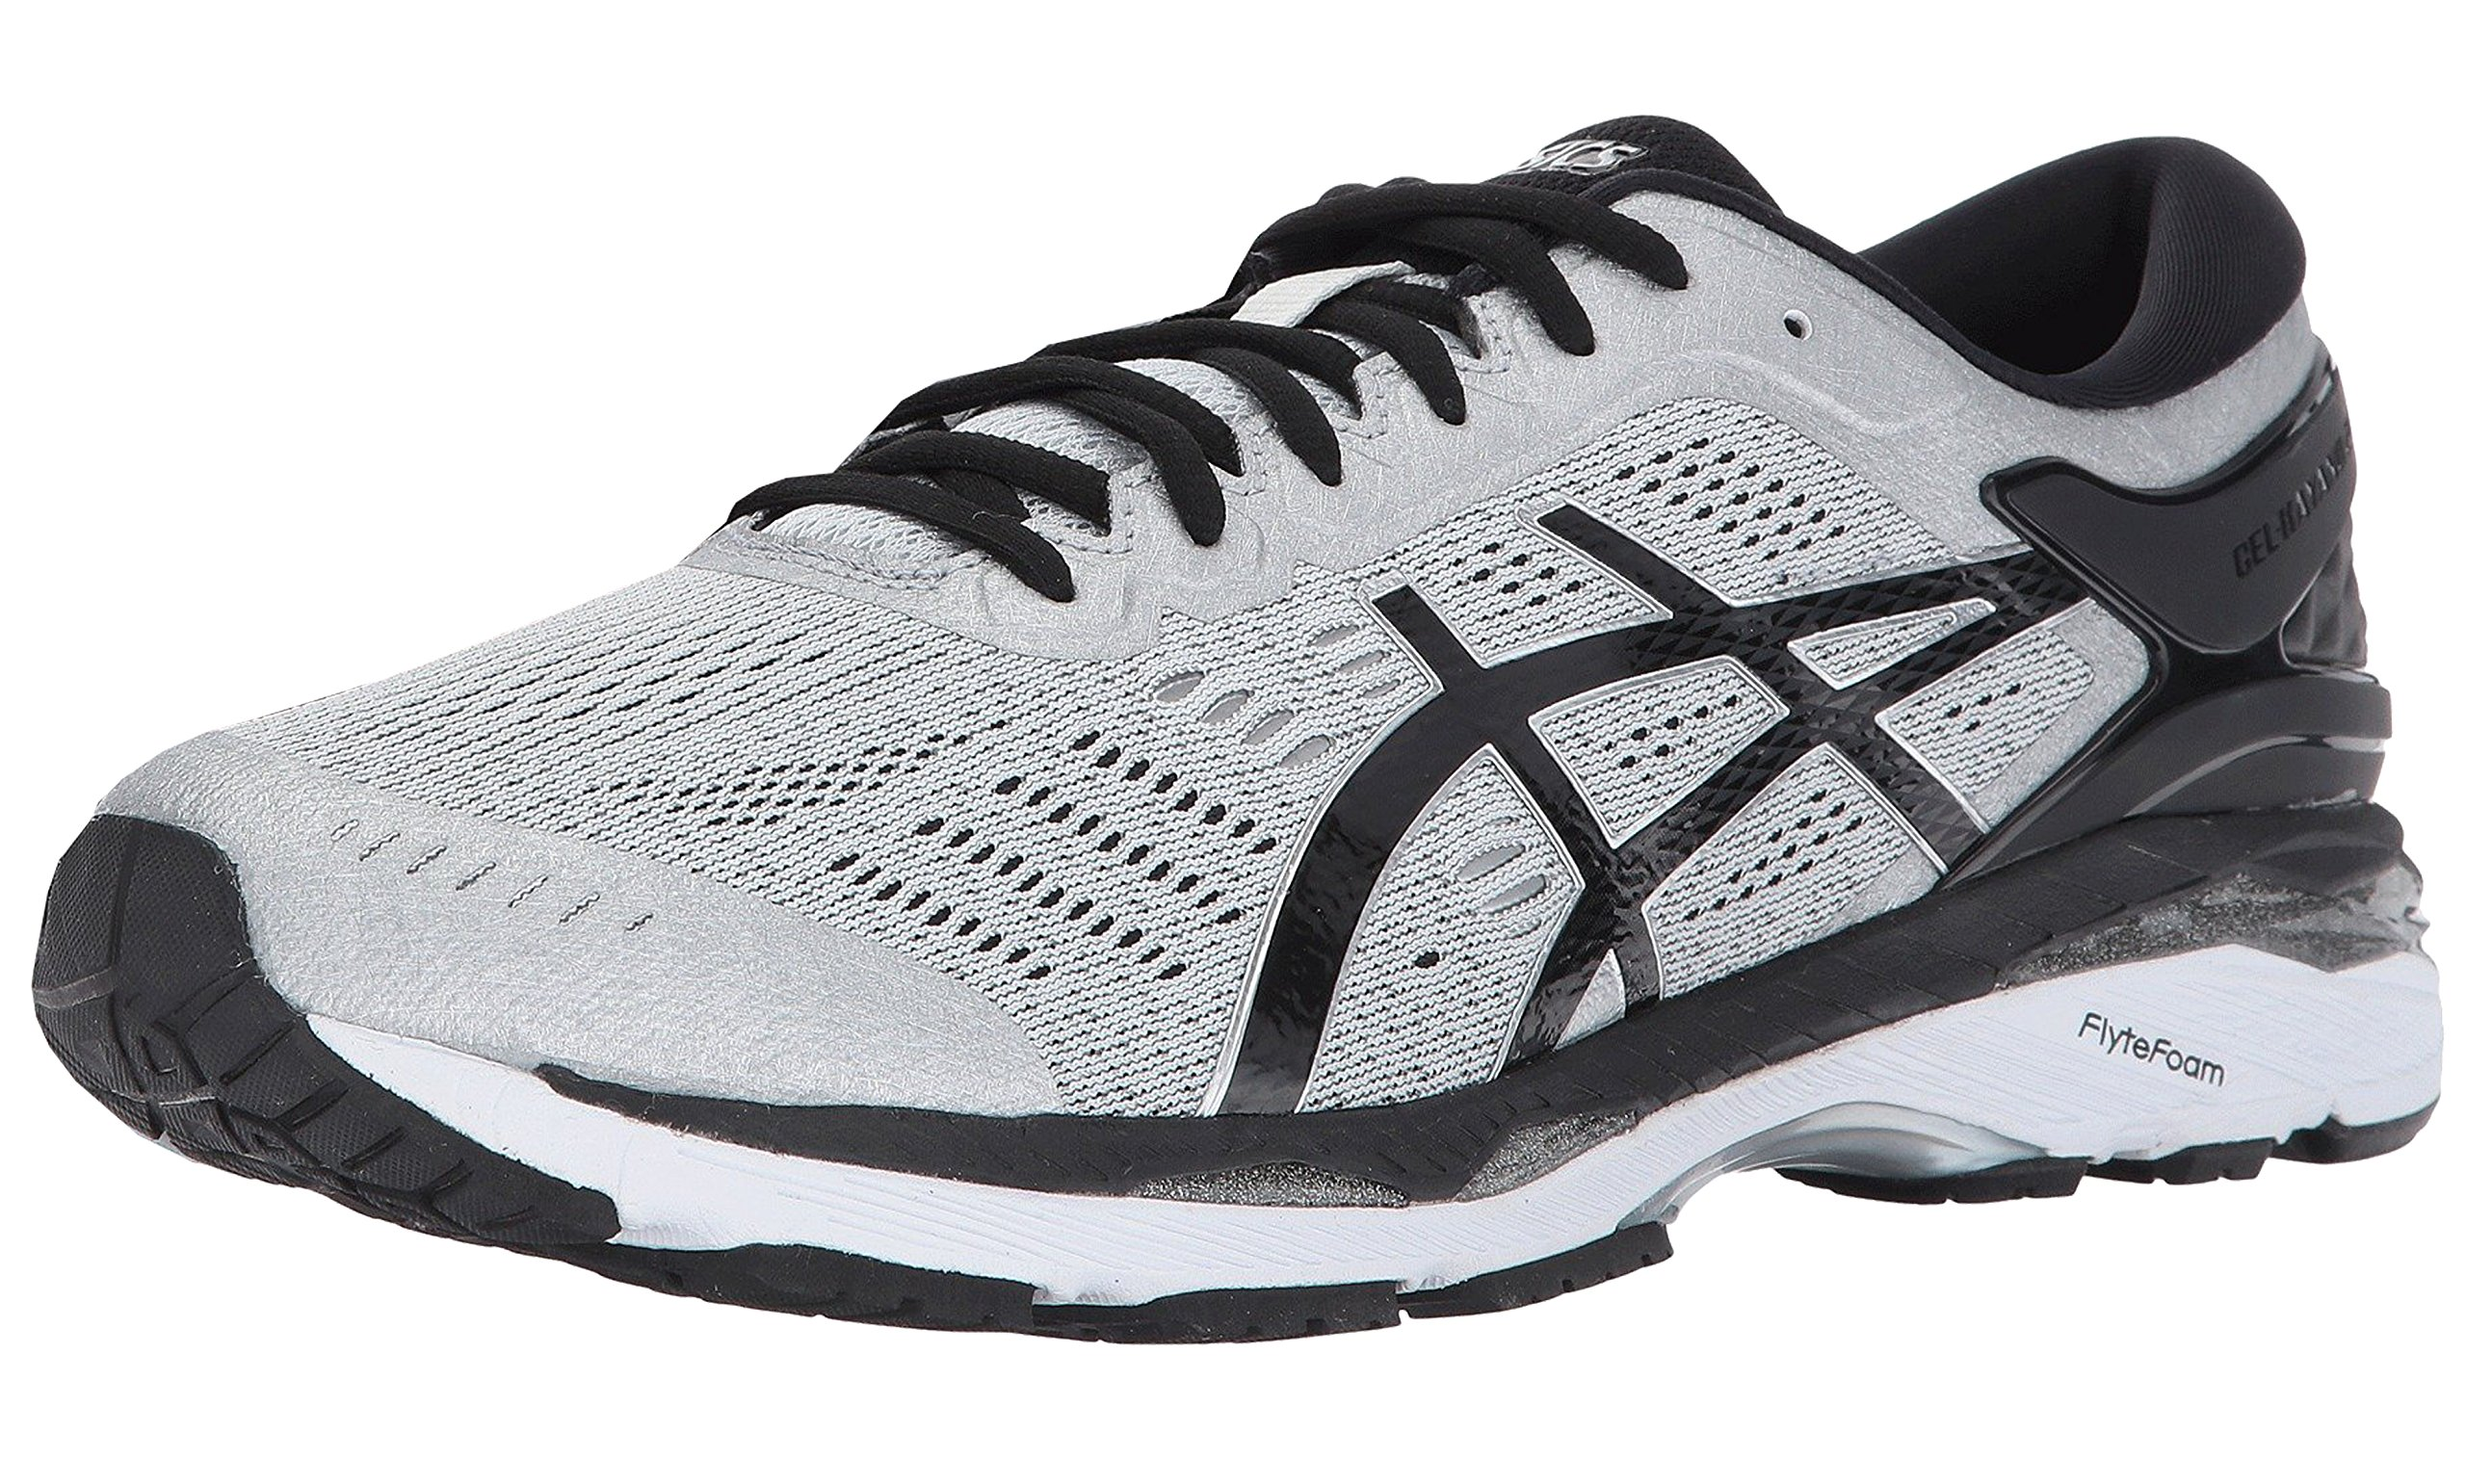 ASICS Men's Gel-Kayano 24 Running Shoe, Silver/Black/Mid Grey, 10 4E US by ASICS